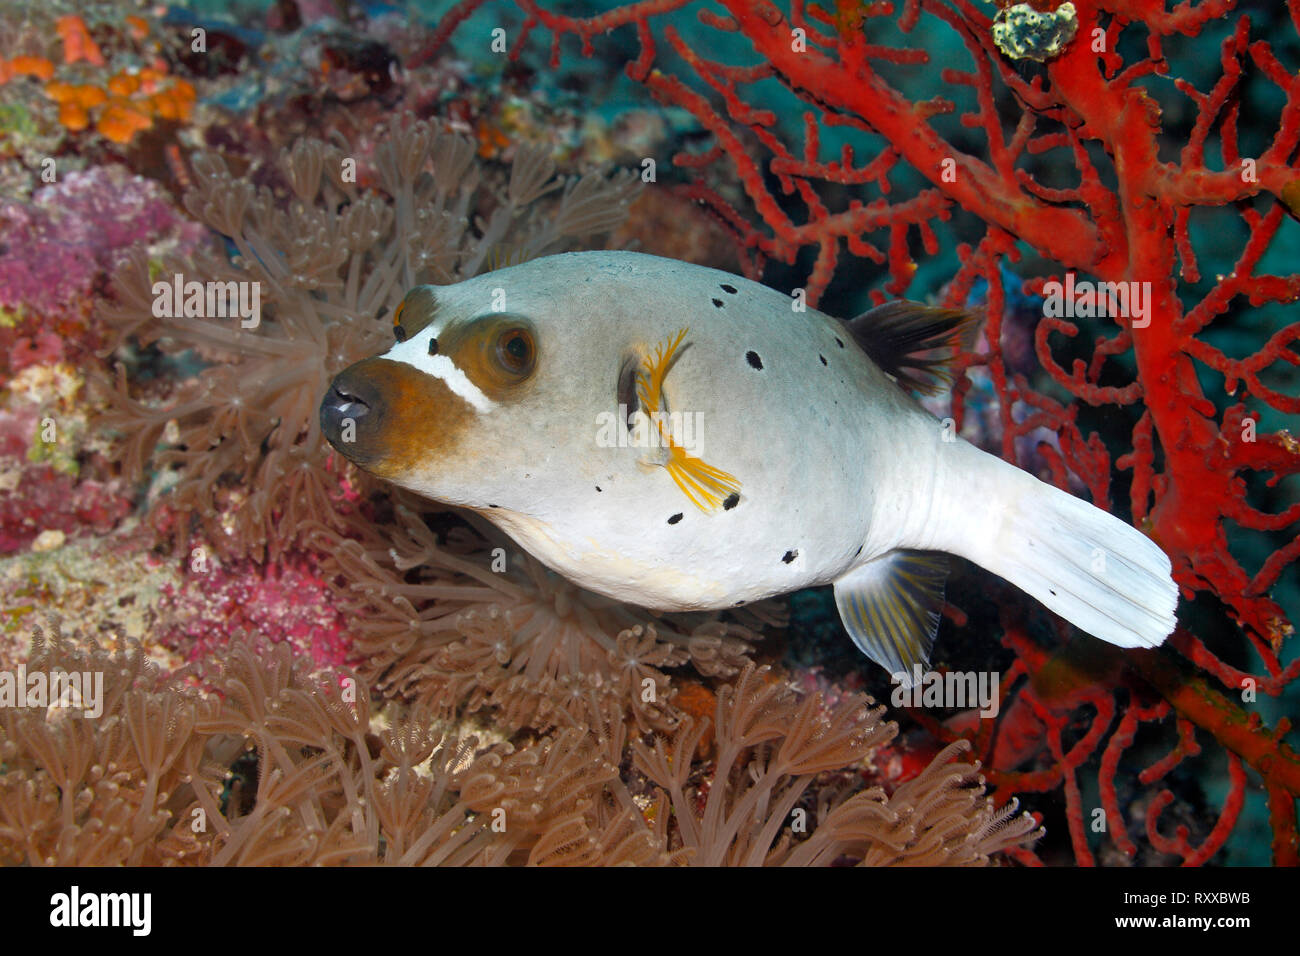 Blackspotted Puffer, also known as the Dog-faced Puffer, Arothron nigropunctatus, swimming with soft corals and red sea fans. Uepi, Solomon Islands - Stock Image